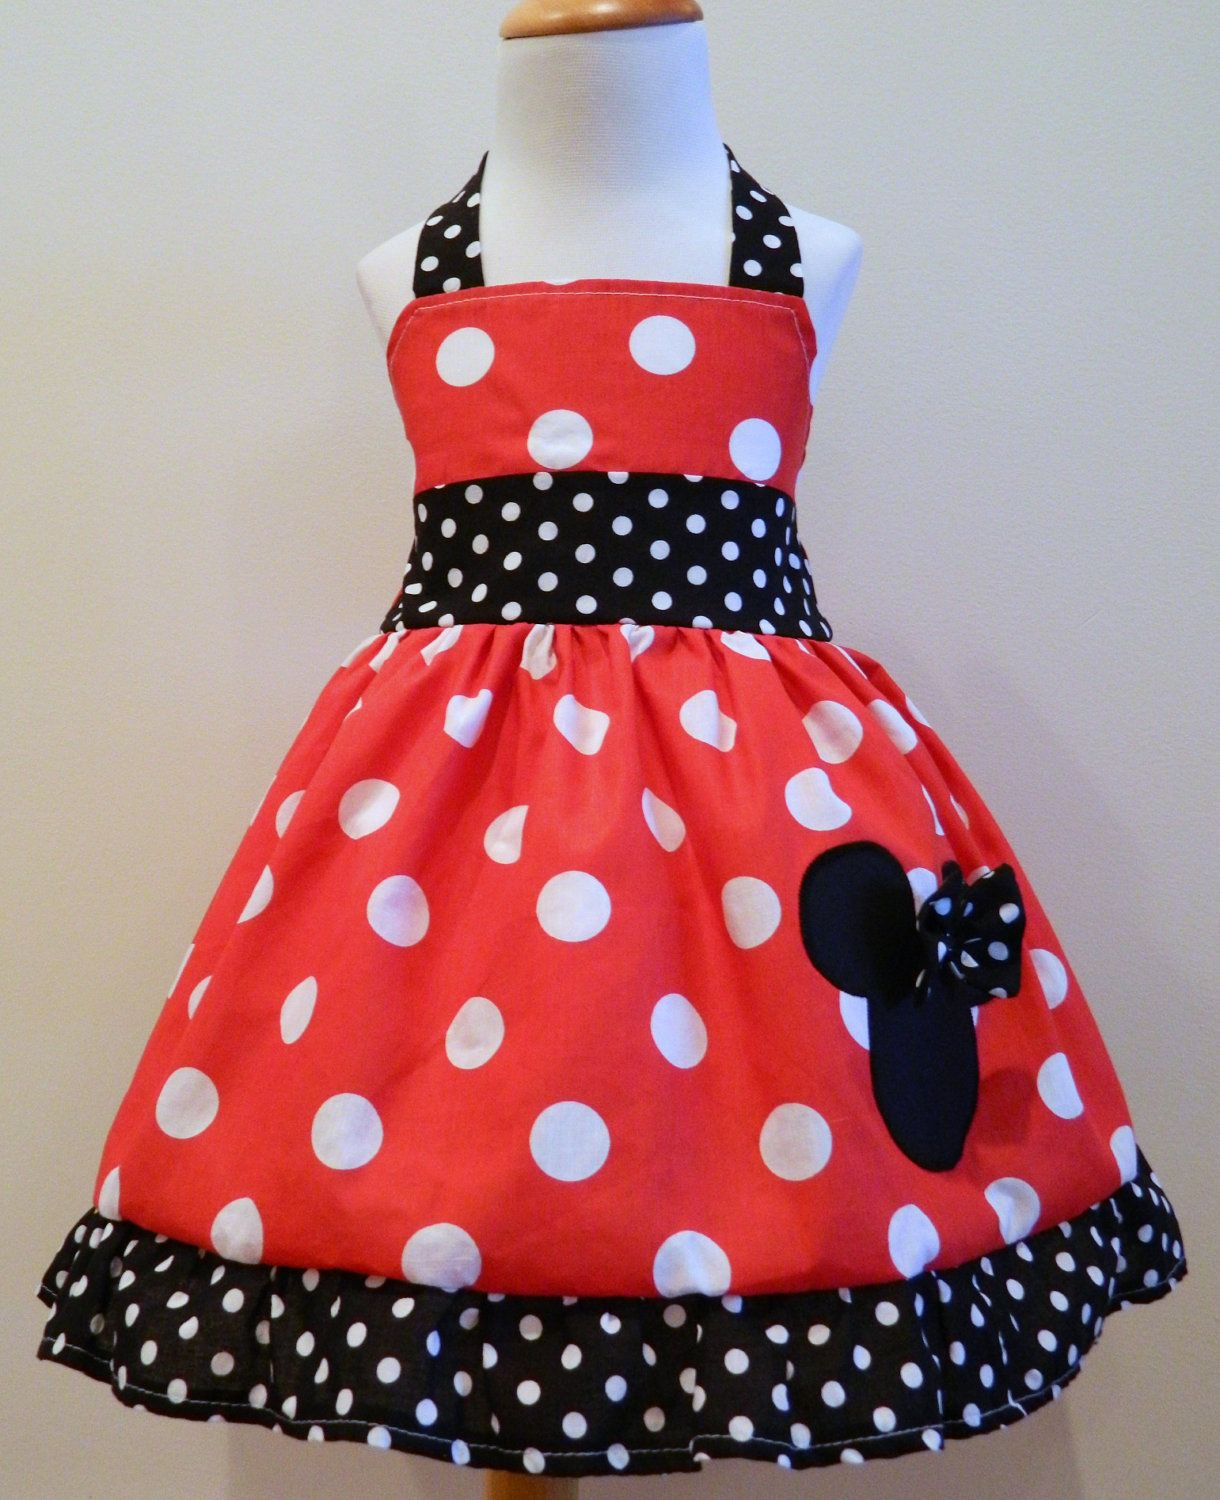 39+ Black and white minnie mouse dress ideas in 2021